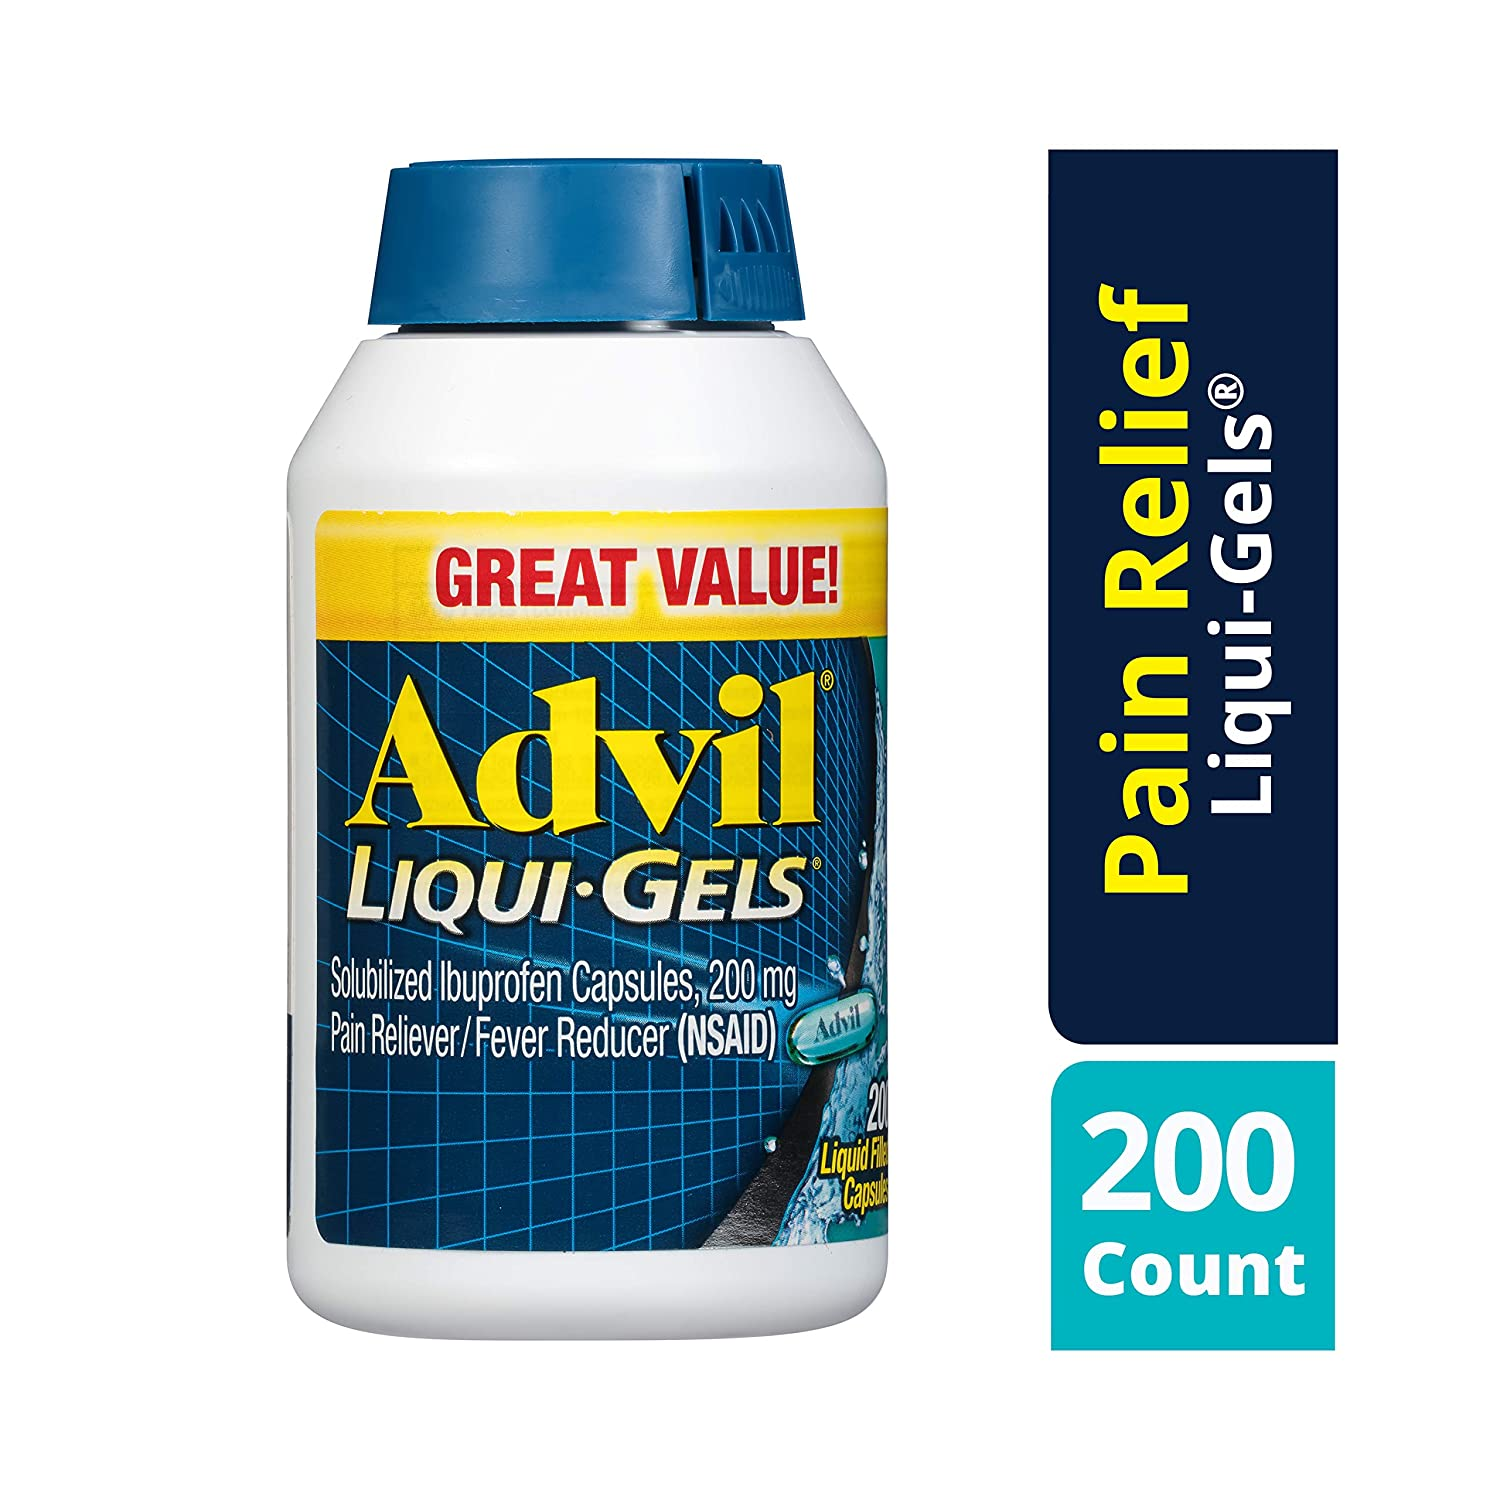 Advil Liqui-Gels (200 Count (Pack of 1)) Pain Reliever / Fever Reducer Liquid Filled Capsule, 200mg Ibuprofen, Temporary Pain Relief